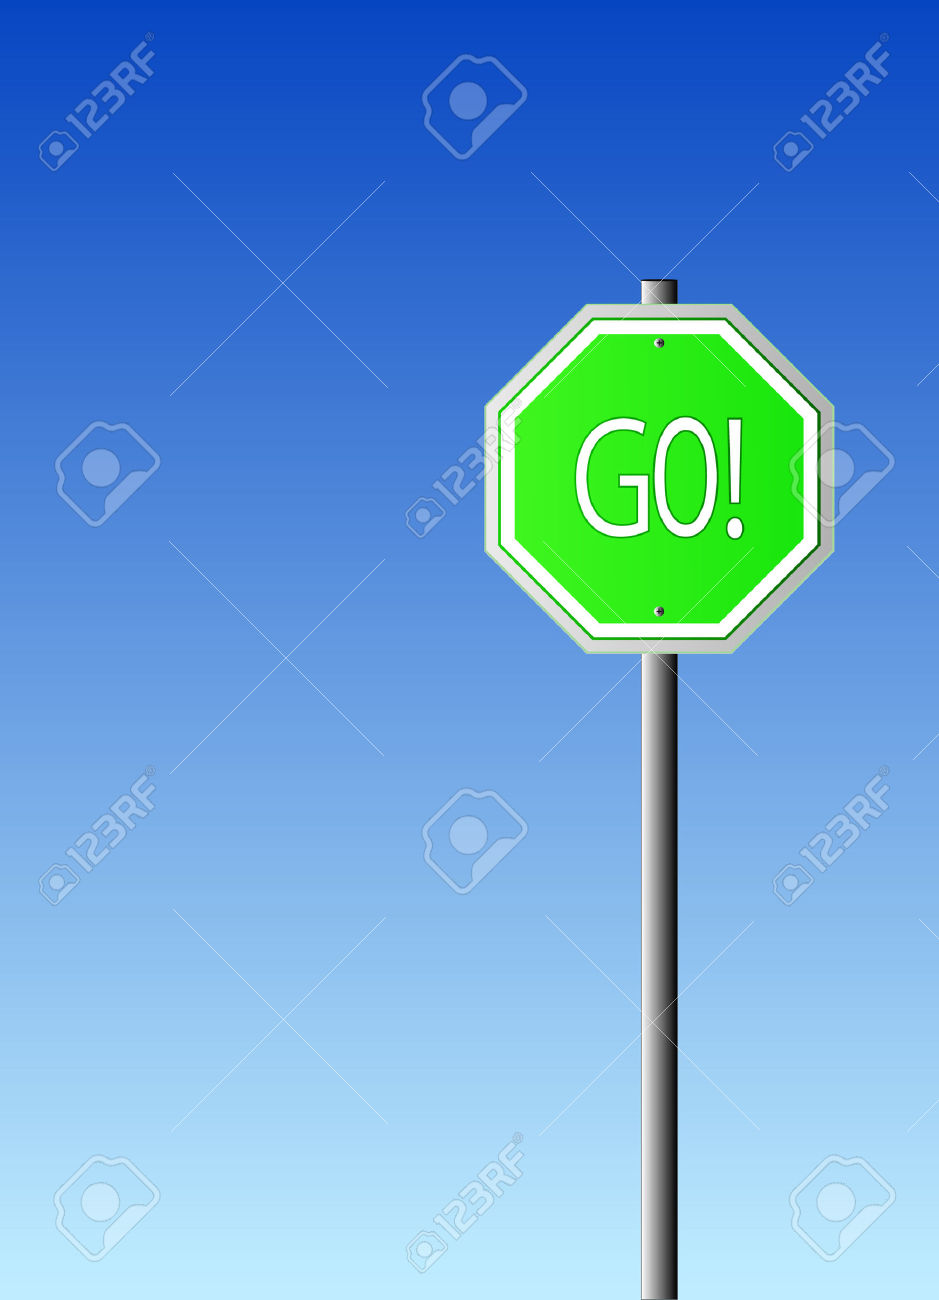 The True To Life Stop Sign Made Into A Go Sign With An